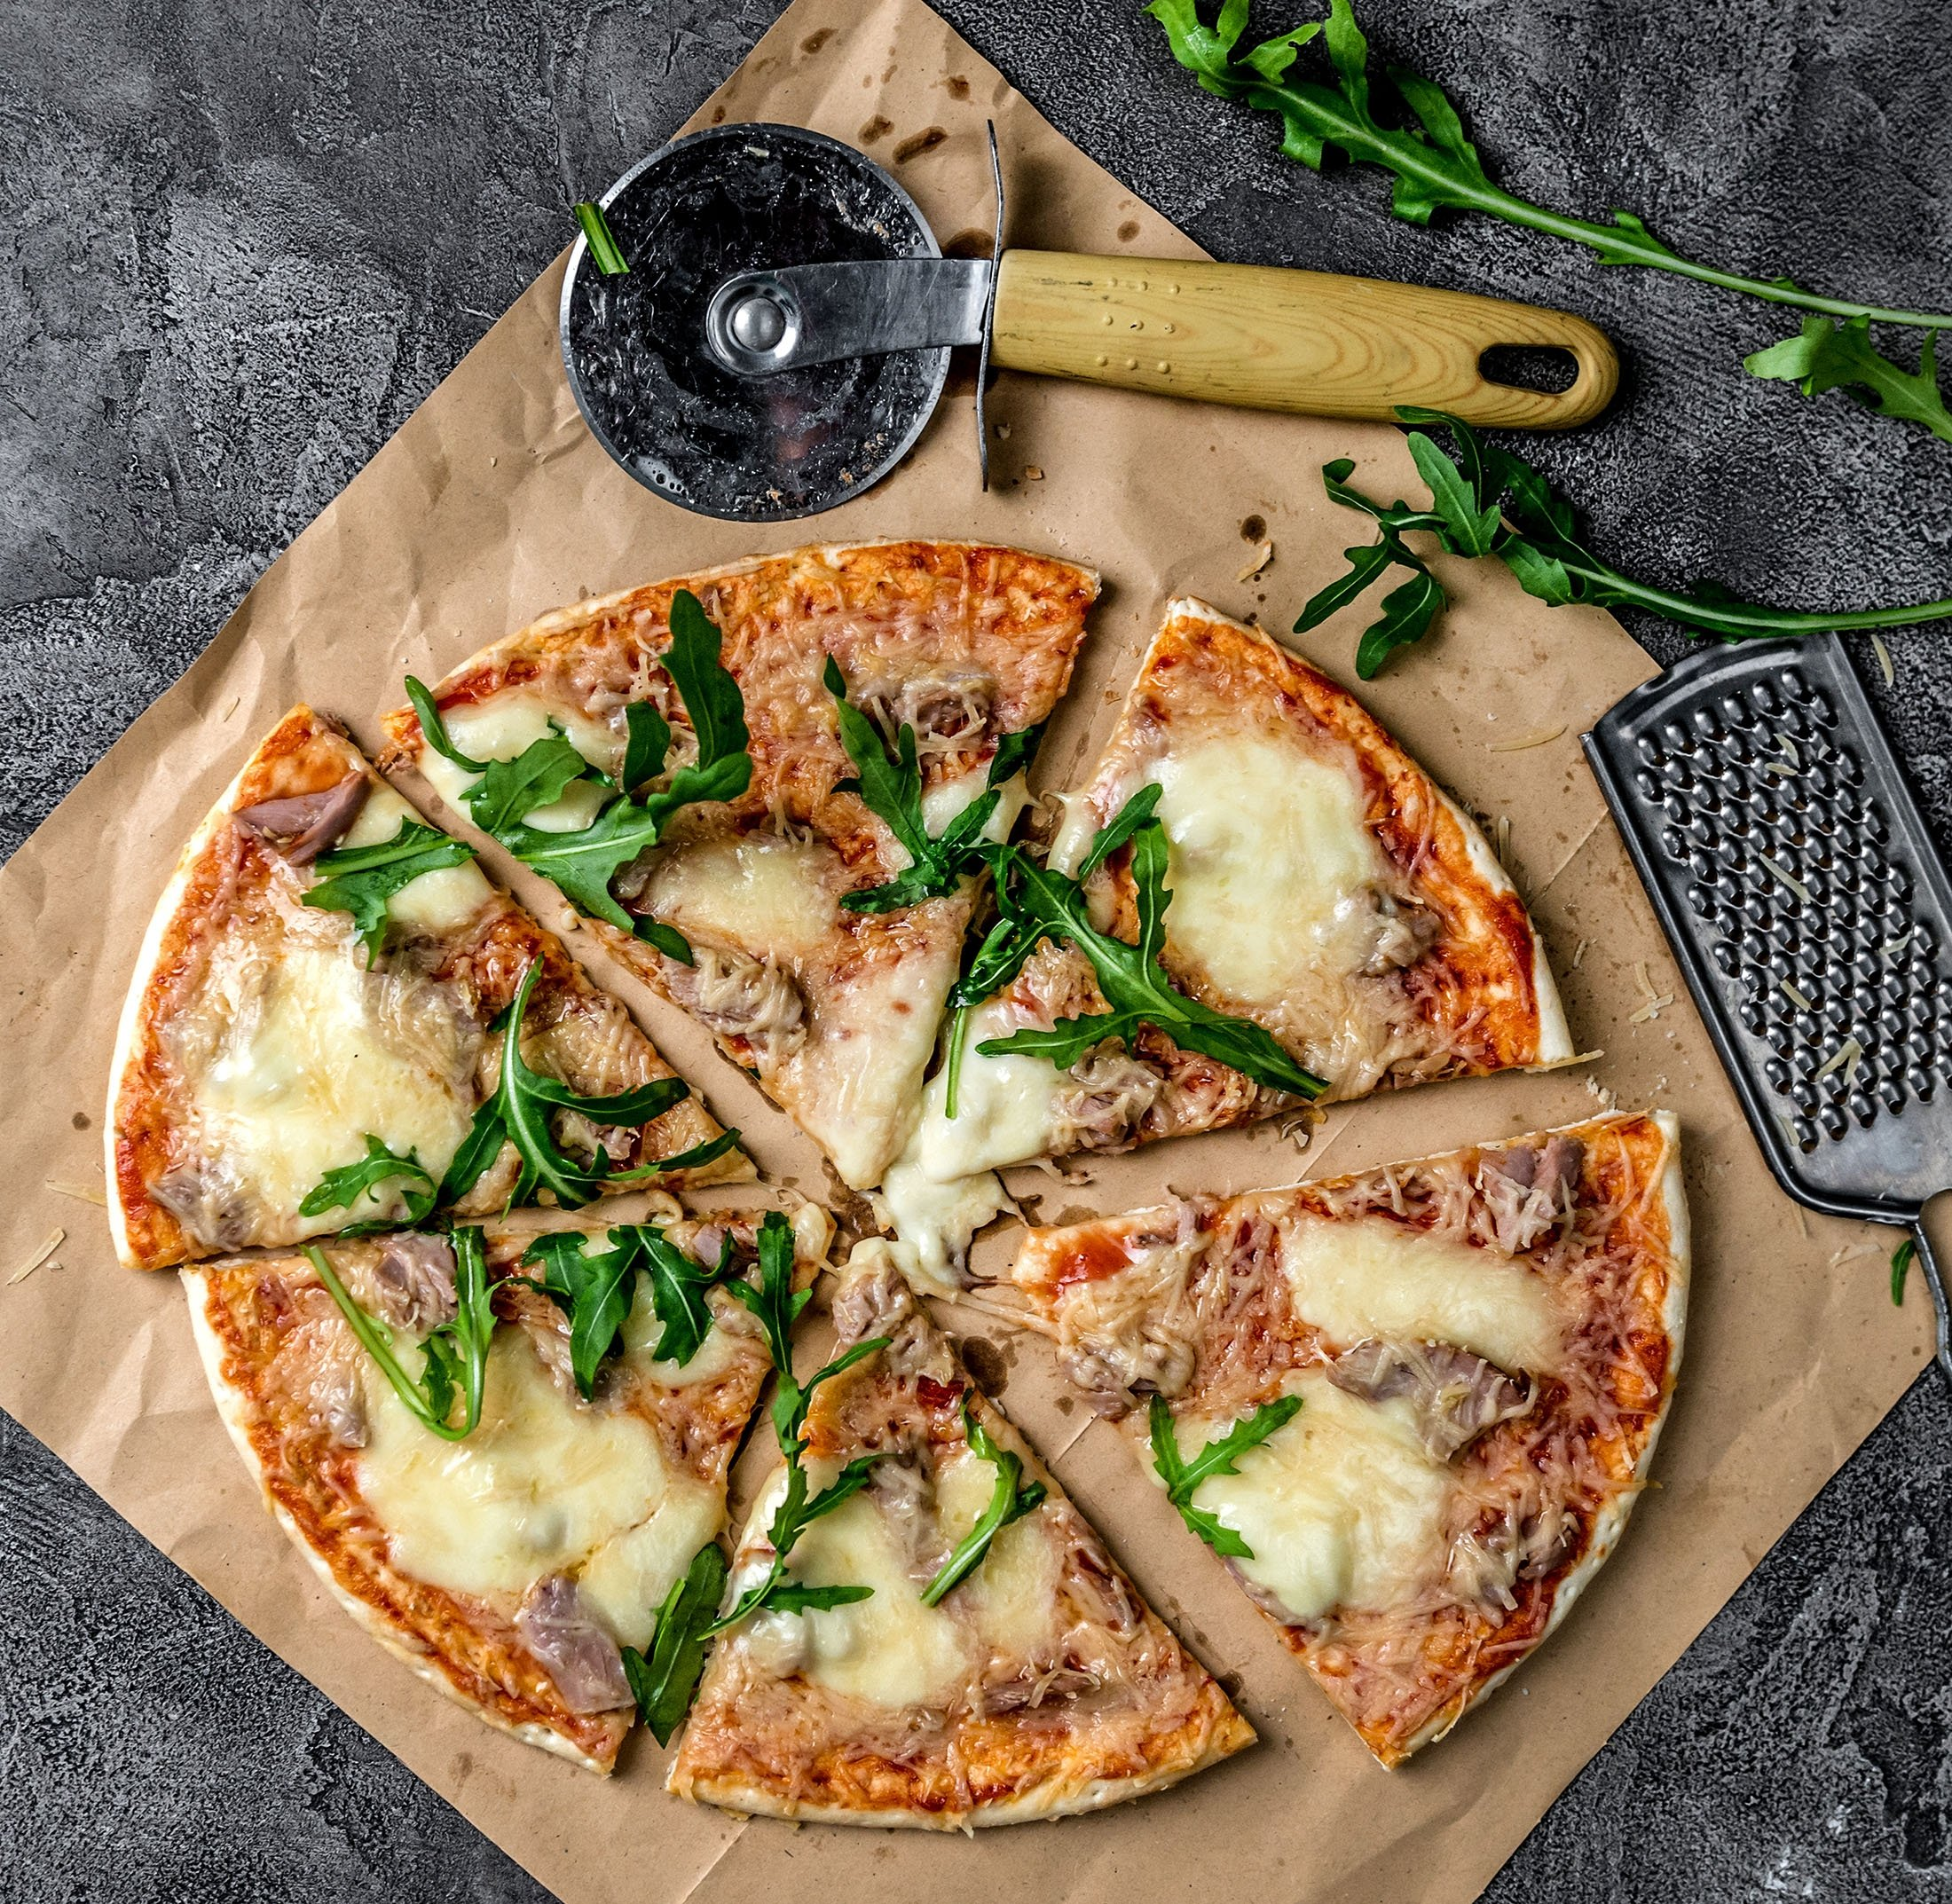 Seafood on pizza pairs well greens or corn. (Shutterstock Photo)